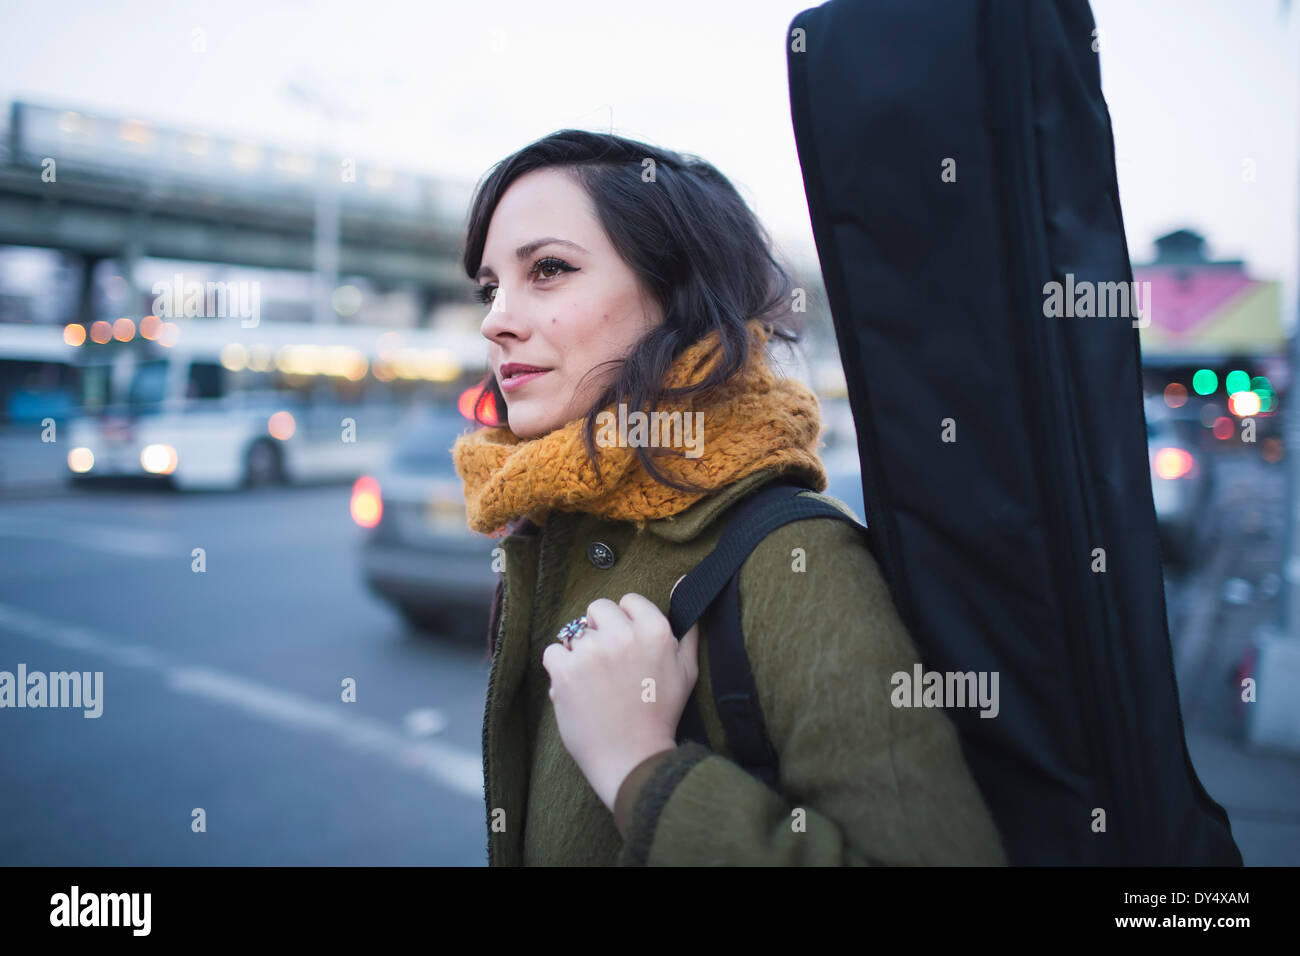 Young woman carrying guitar case Photo Stock